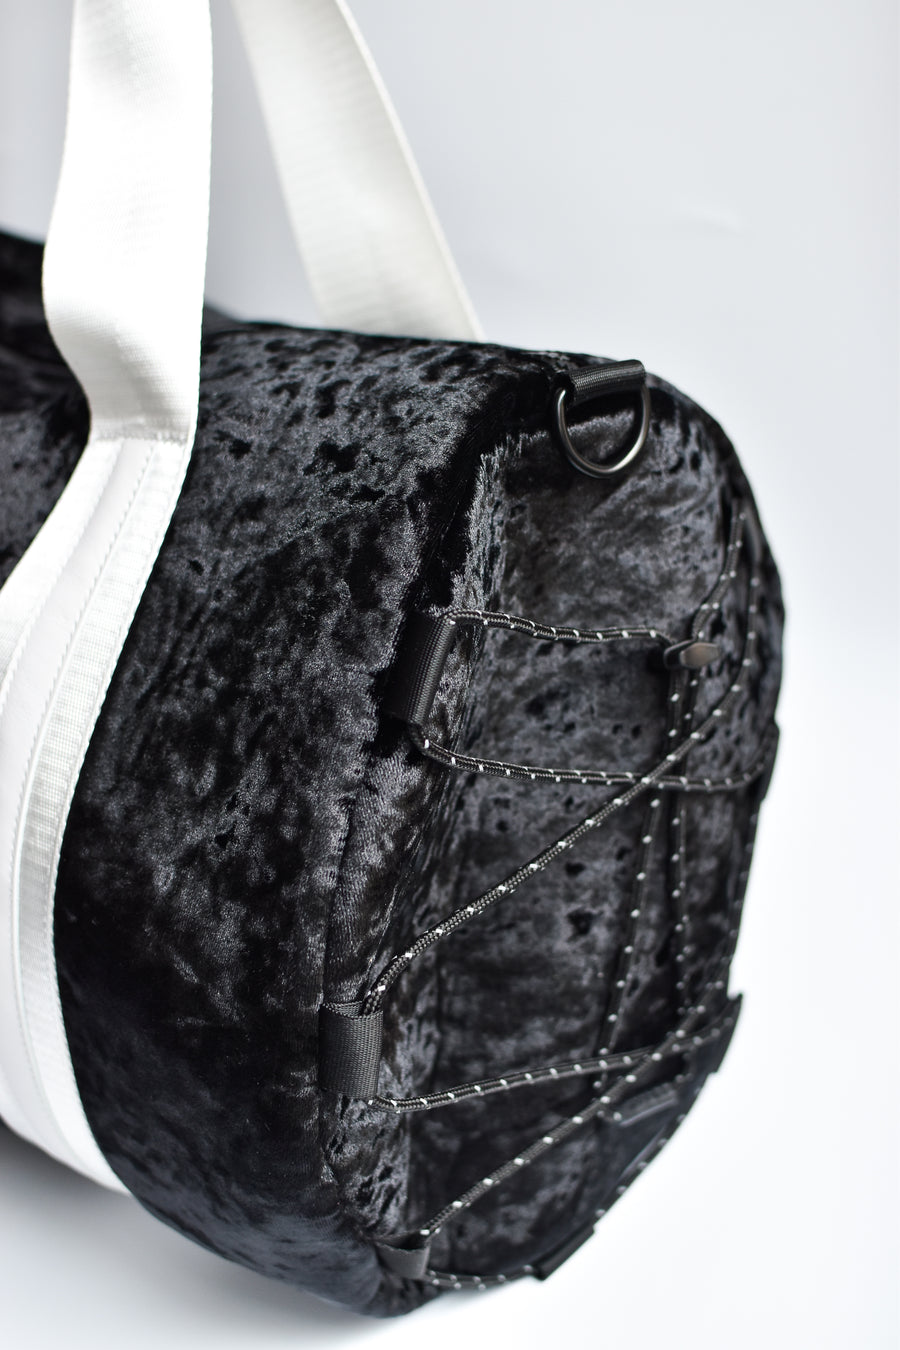 Close up of bungee strap detail on side of black velour duffel bag with white straps and leather details.